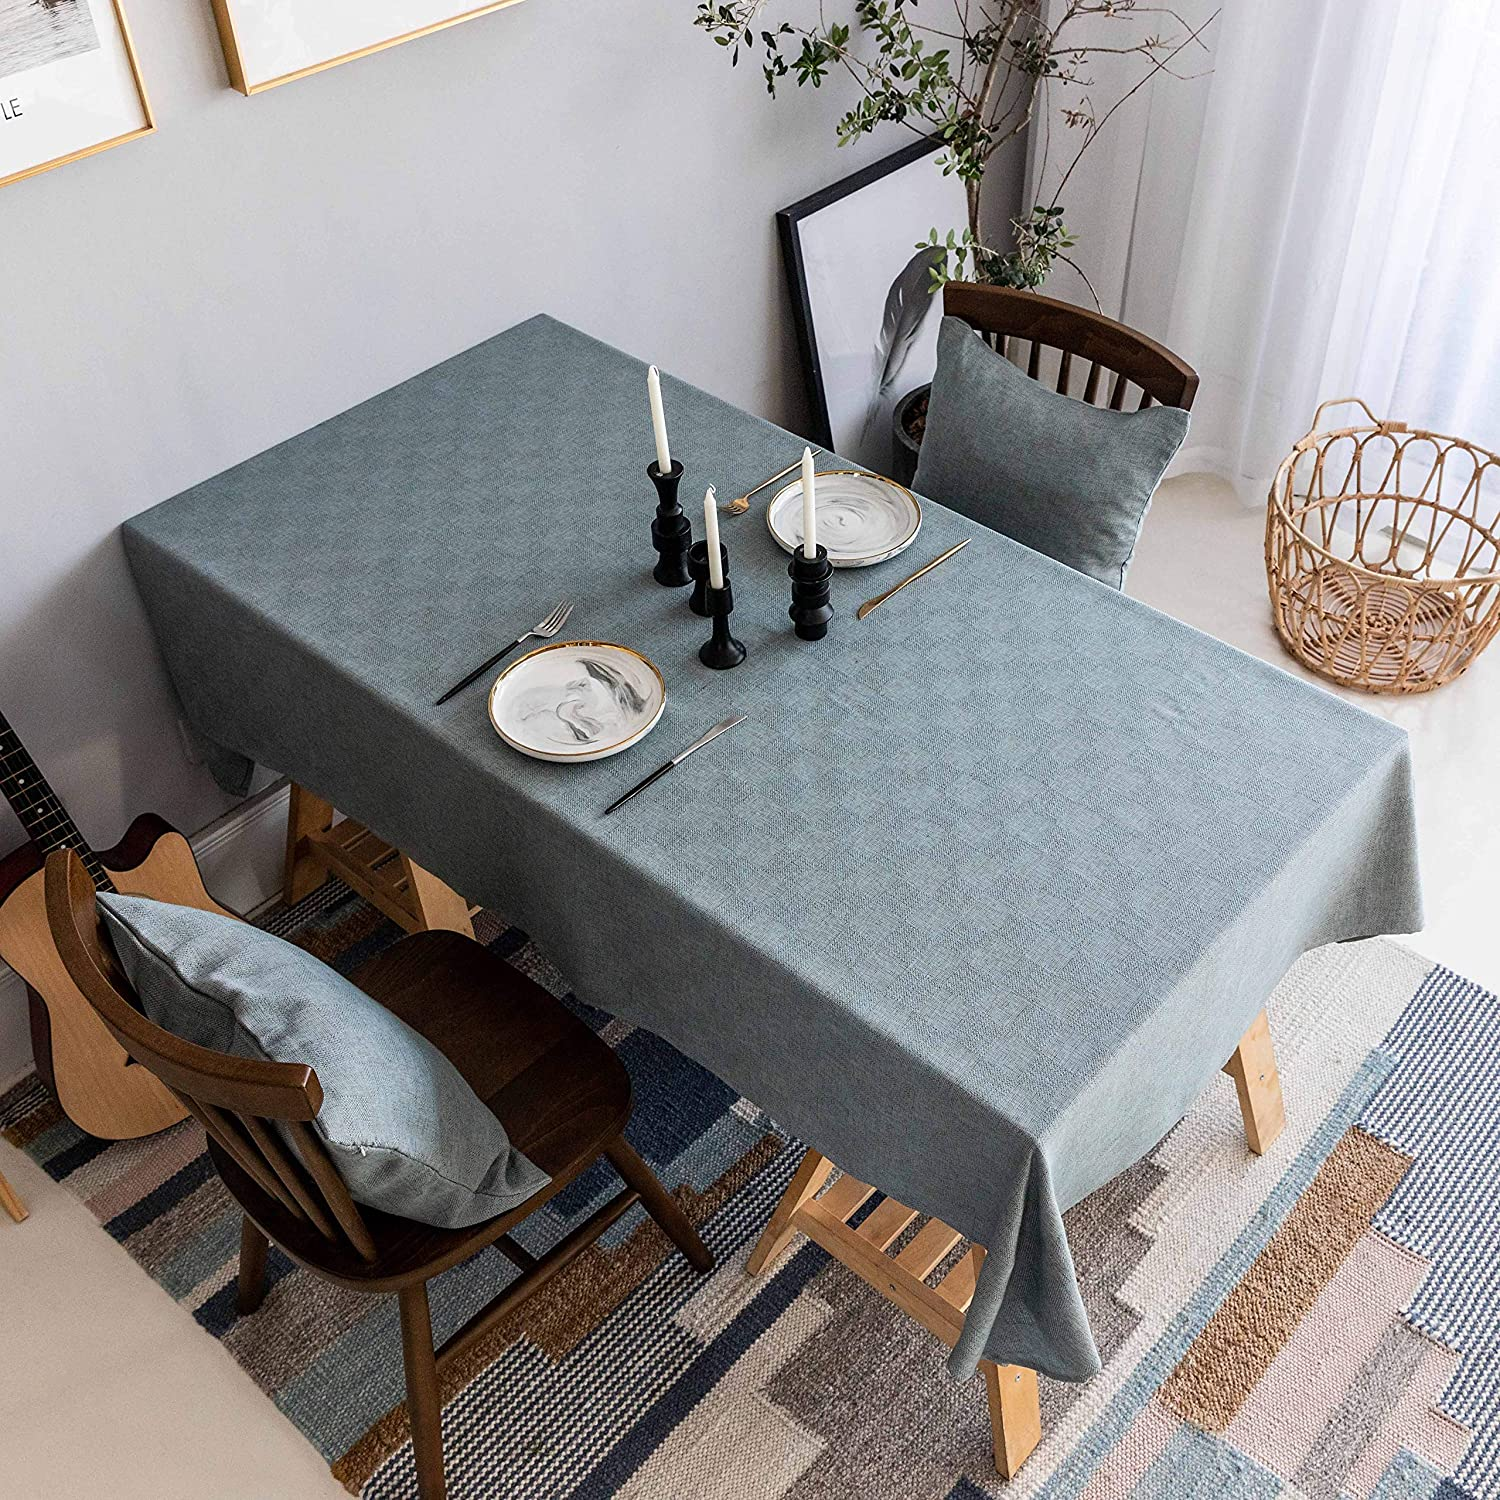 Home Brilliant Tablecloth Solid Farmhouse Checker Table Covers for Party Kitchen Indoor Outdoor Table Clothes for Dining Table, 52x102 inch, Grey Blue with Brown Thread